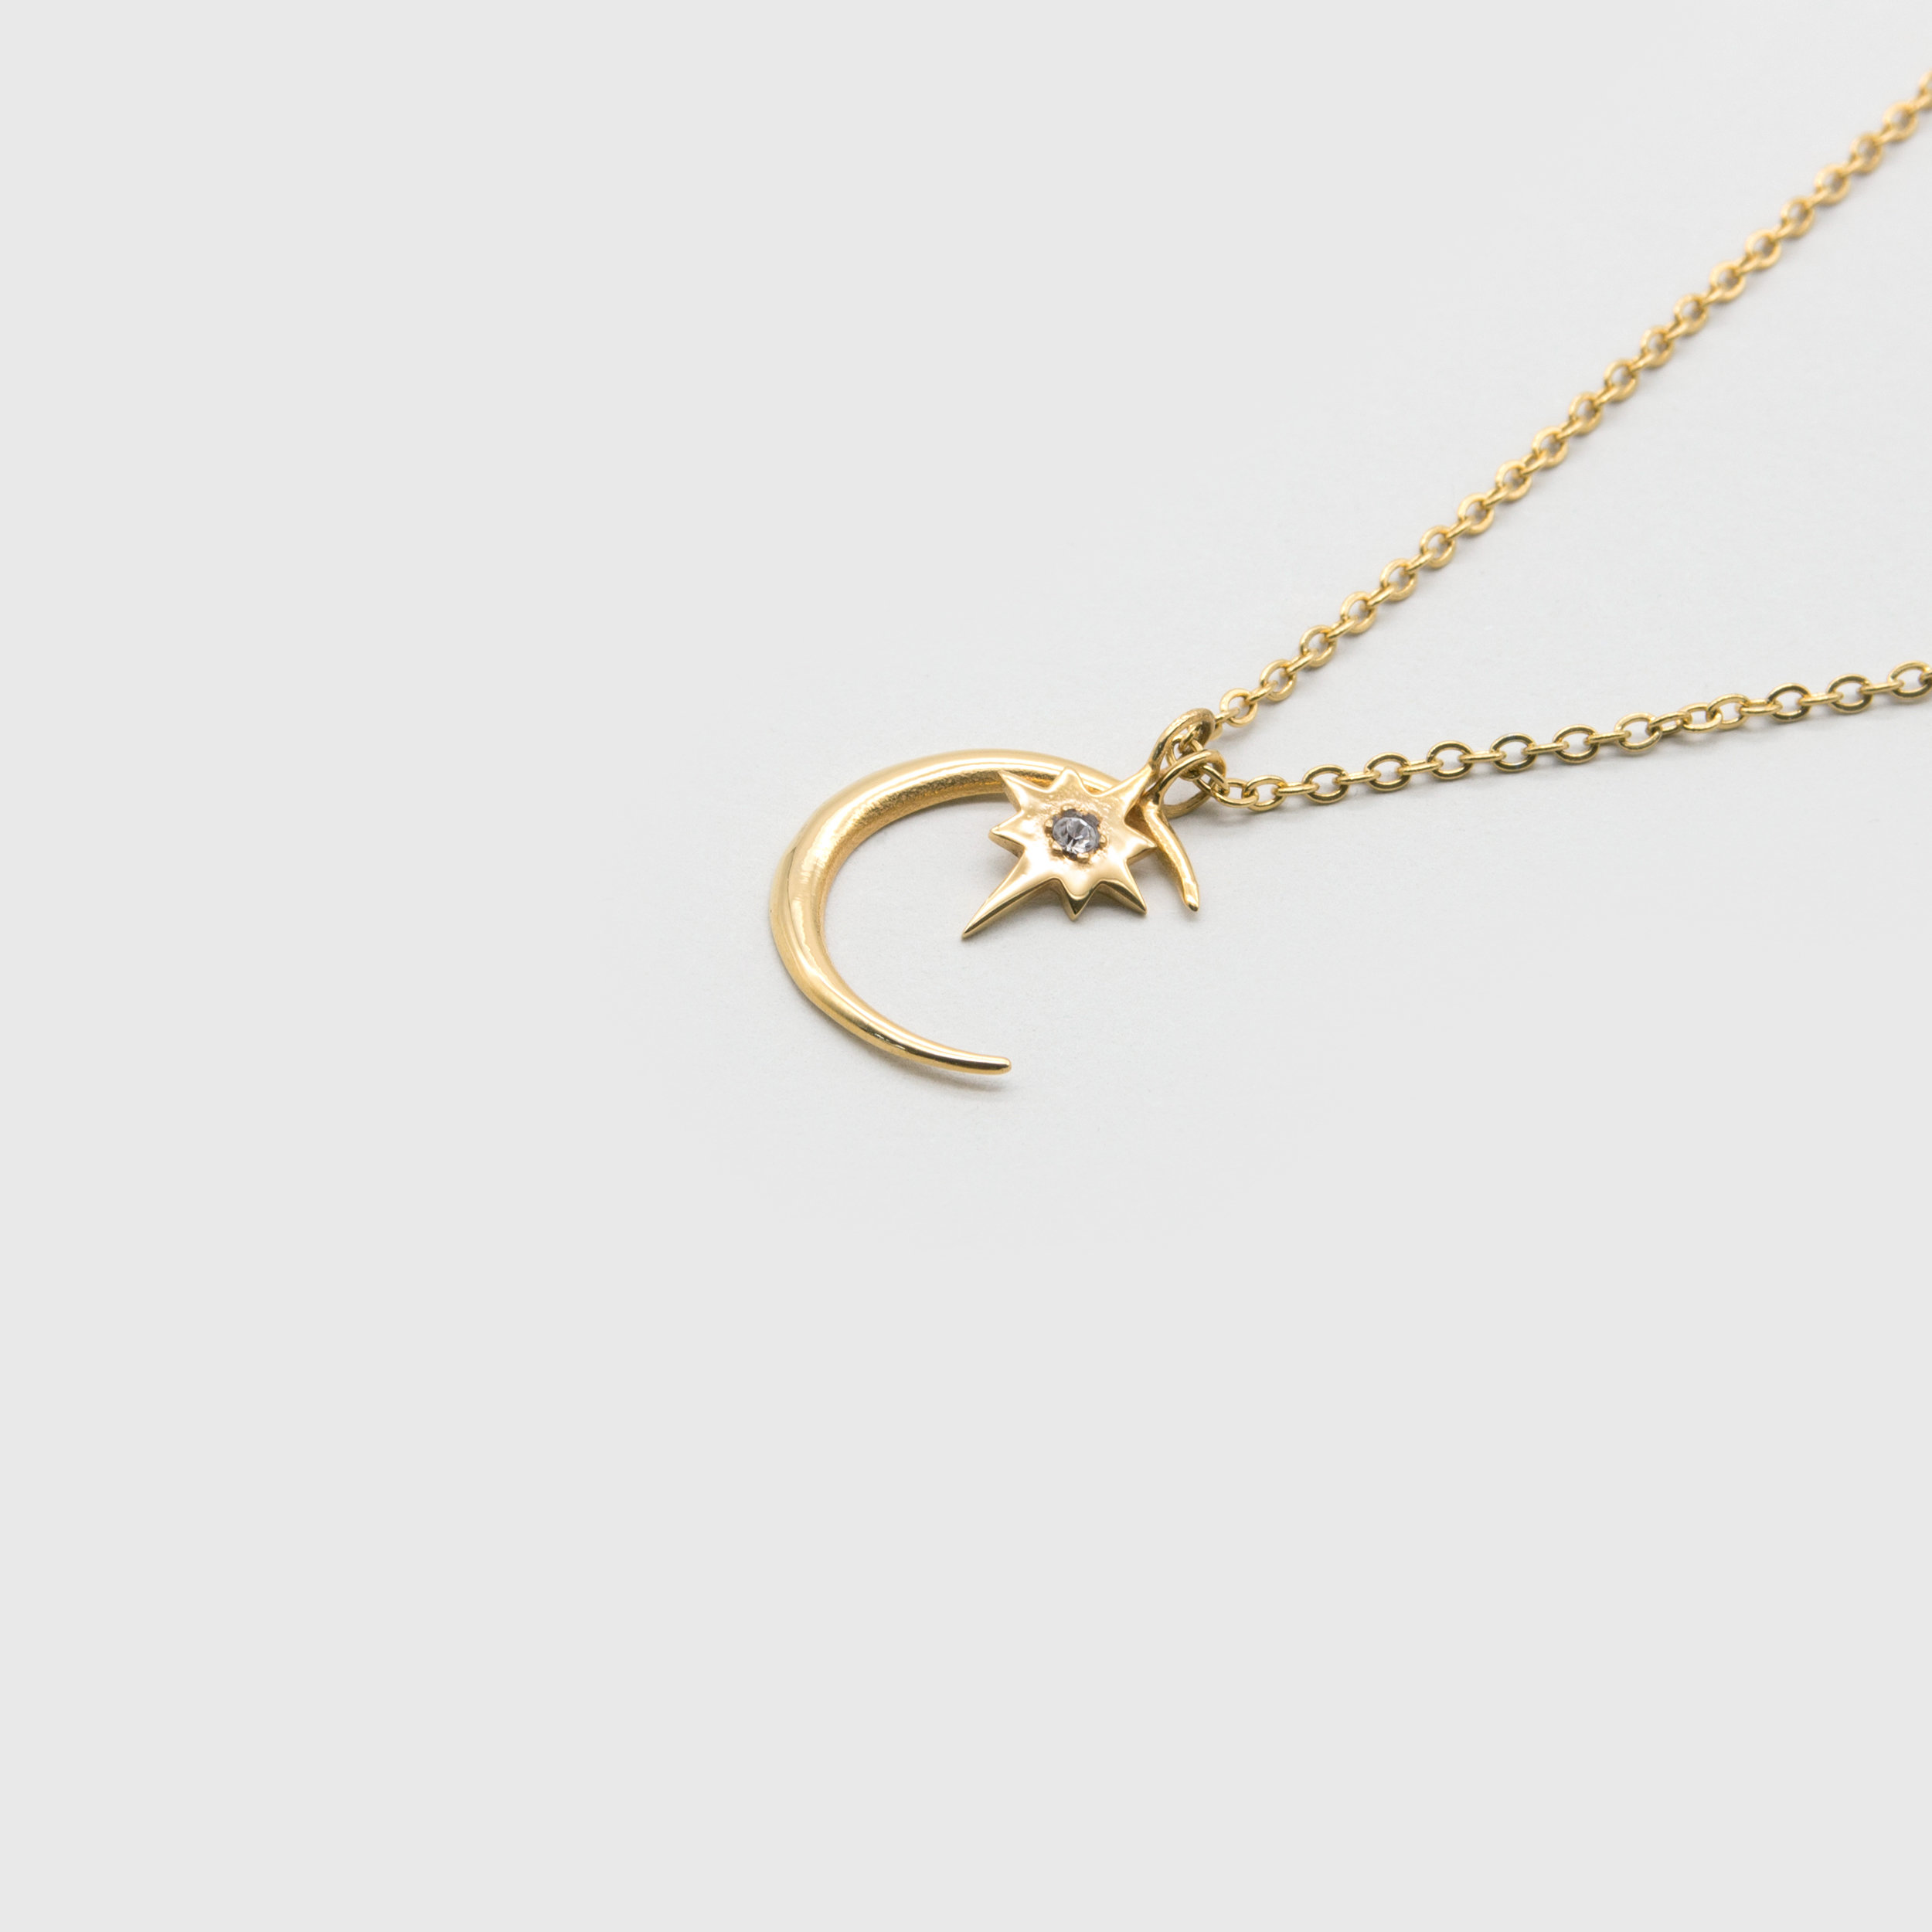 Kuku gold moon necklace with star charm